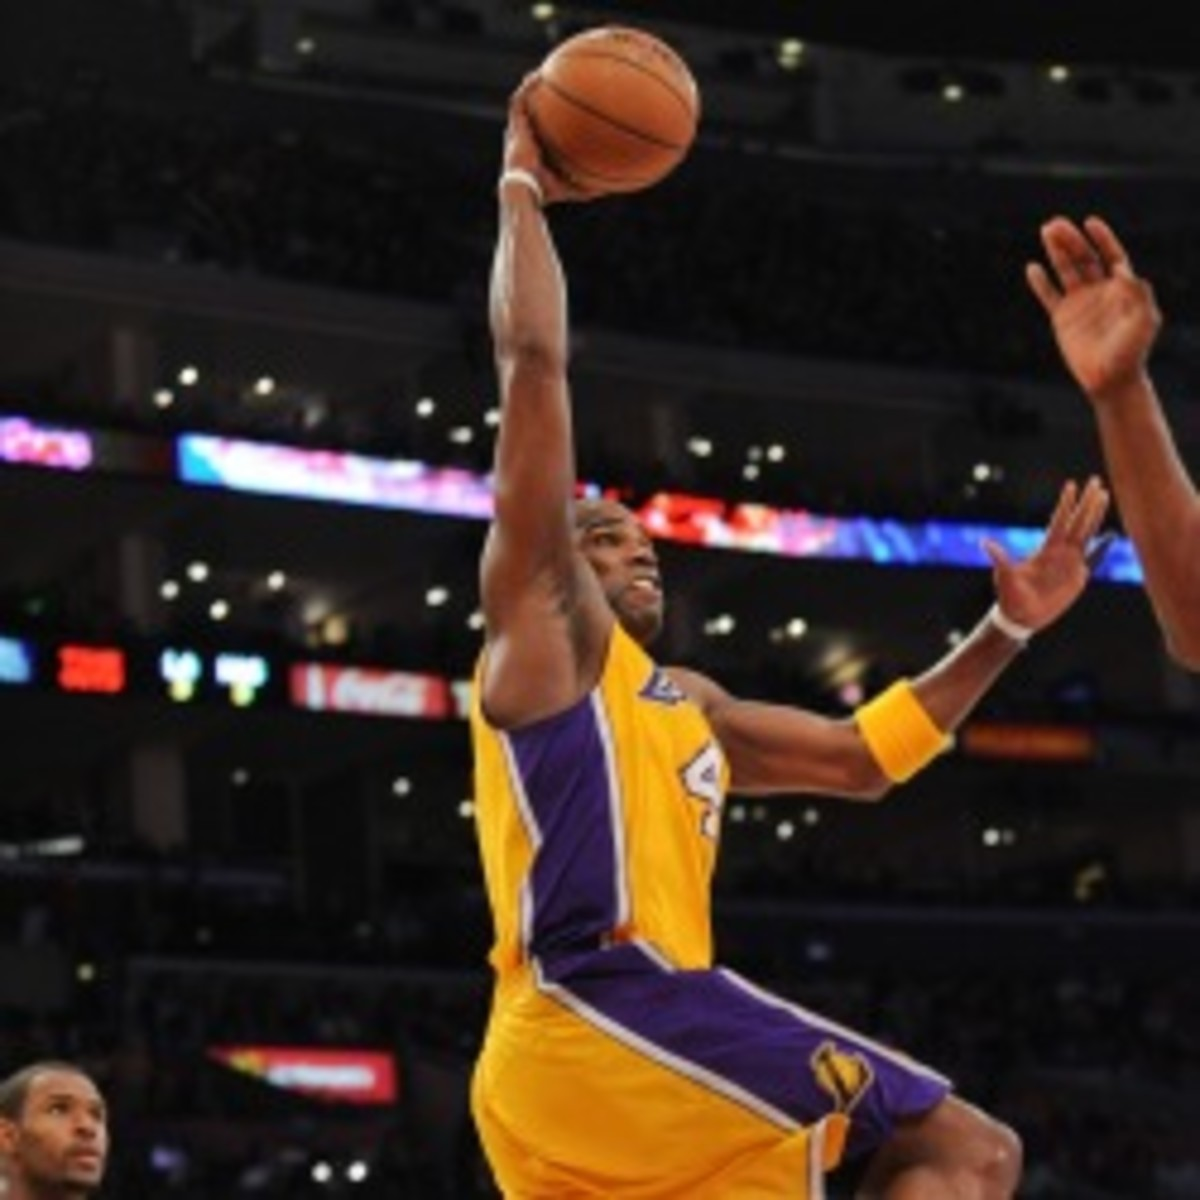 Lakers forward Antawn Jamison is not expected to miss time with an injured wrist. (Noah Graham/NBA/Getty Images)